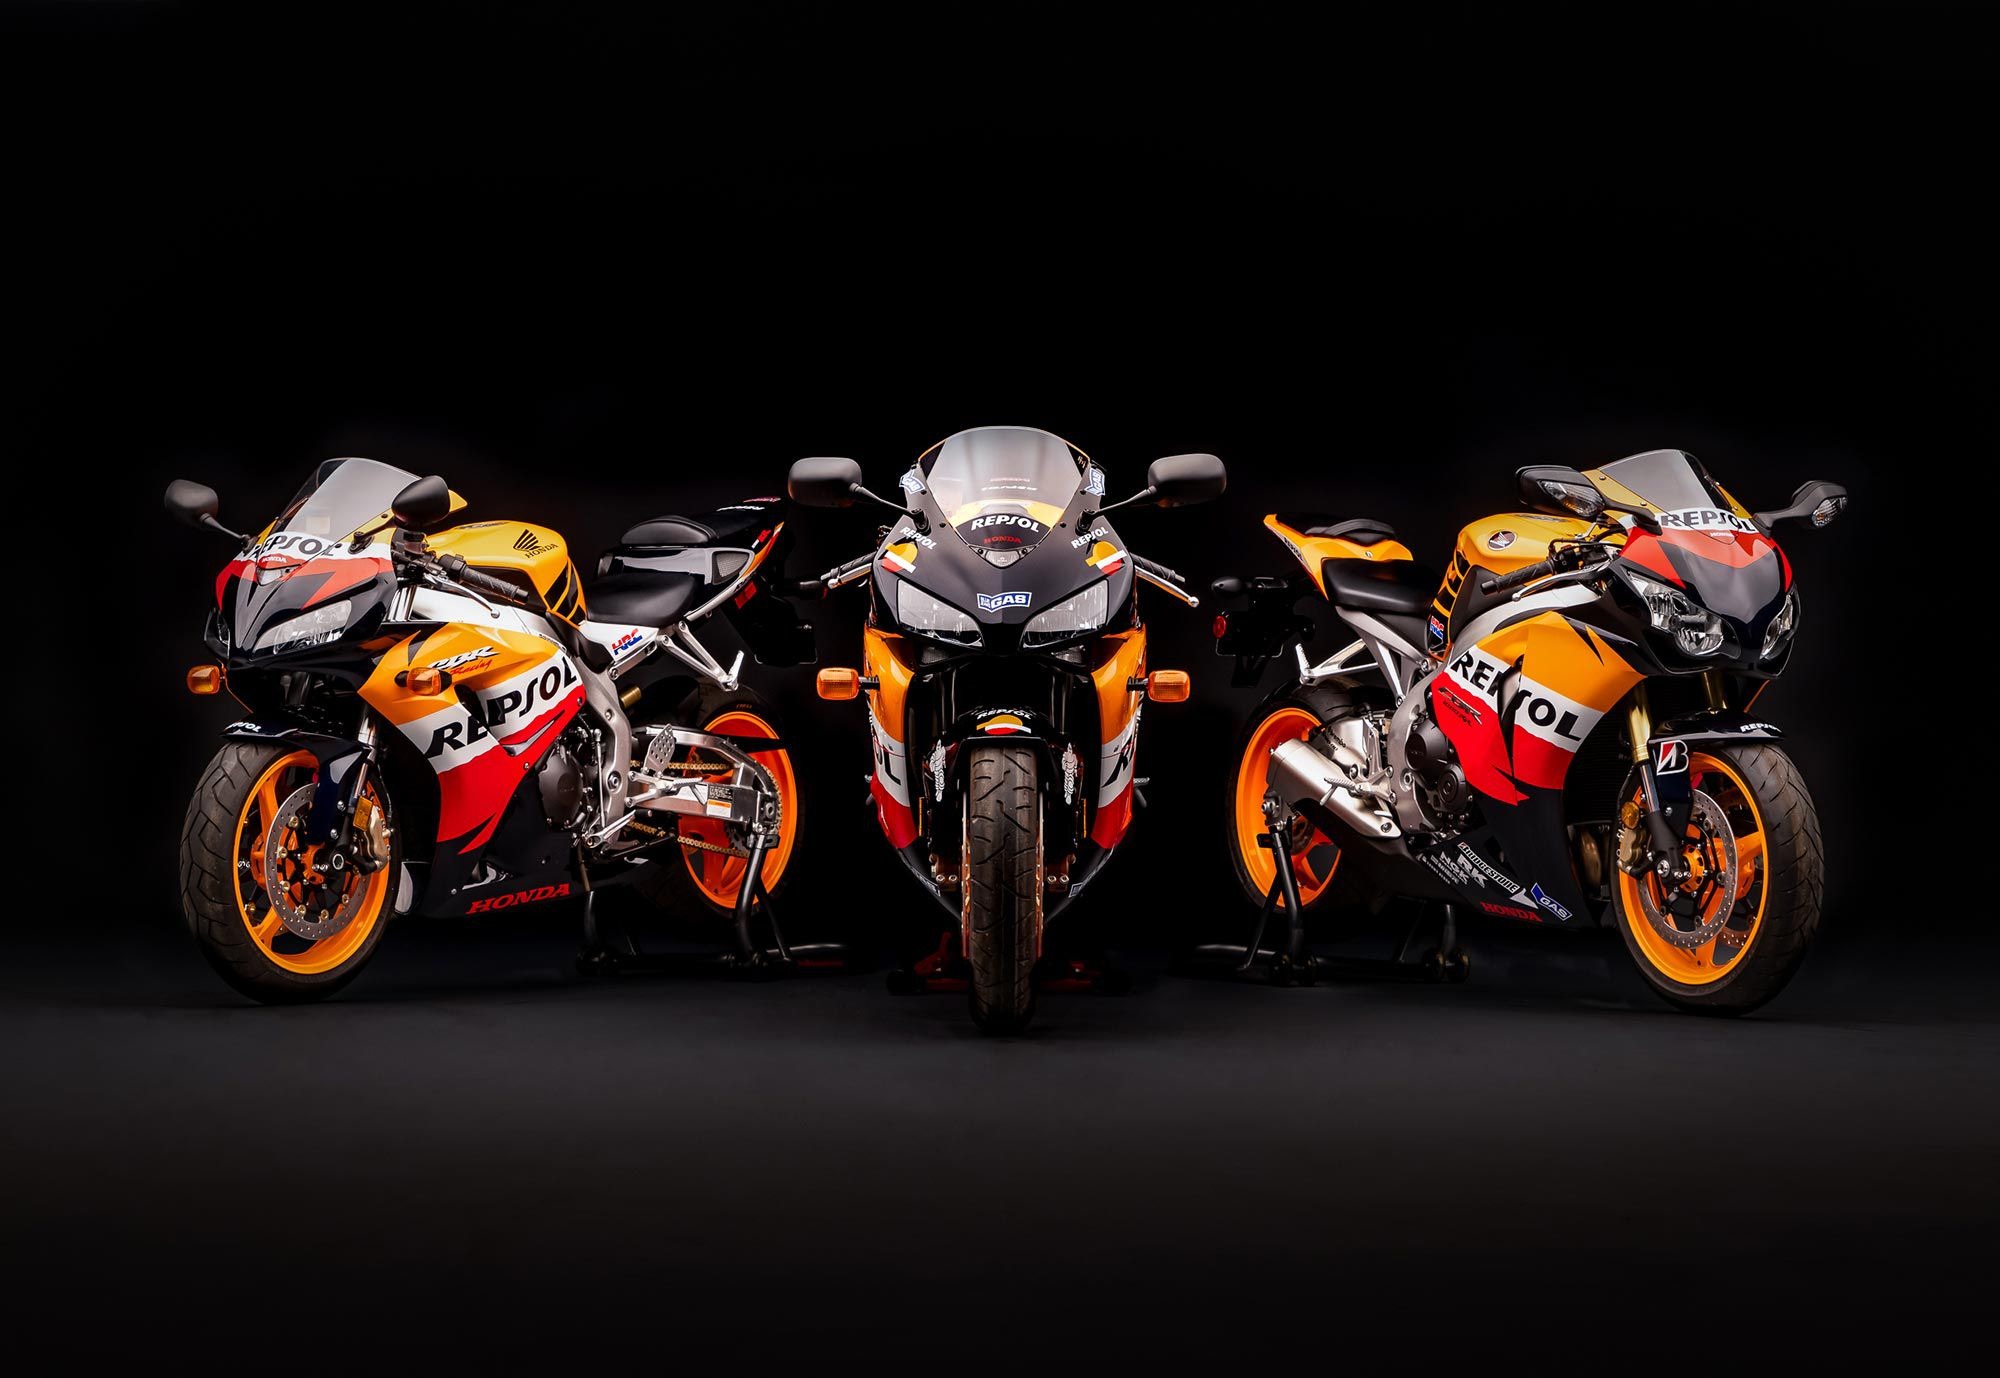 Three bikes on auction, with all proceeds going to the Pediatric Brain Tumor Foundation.